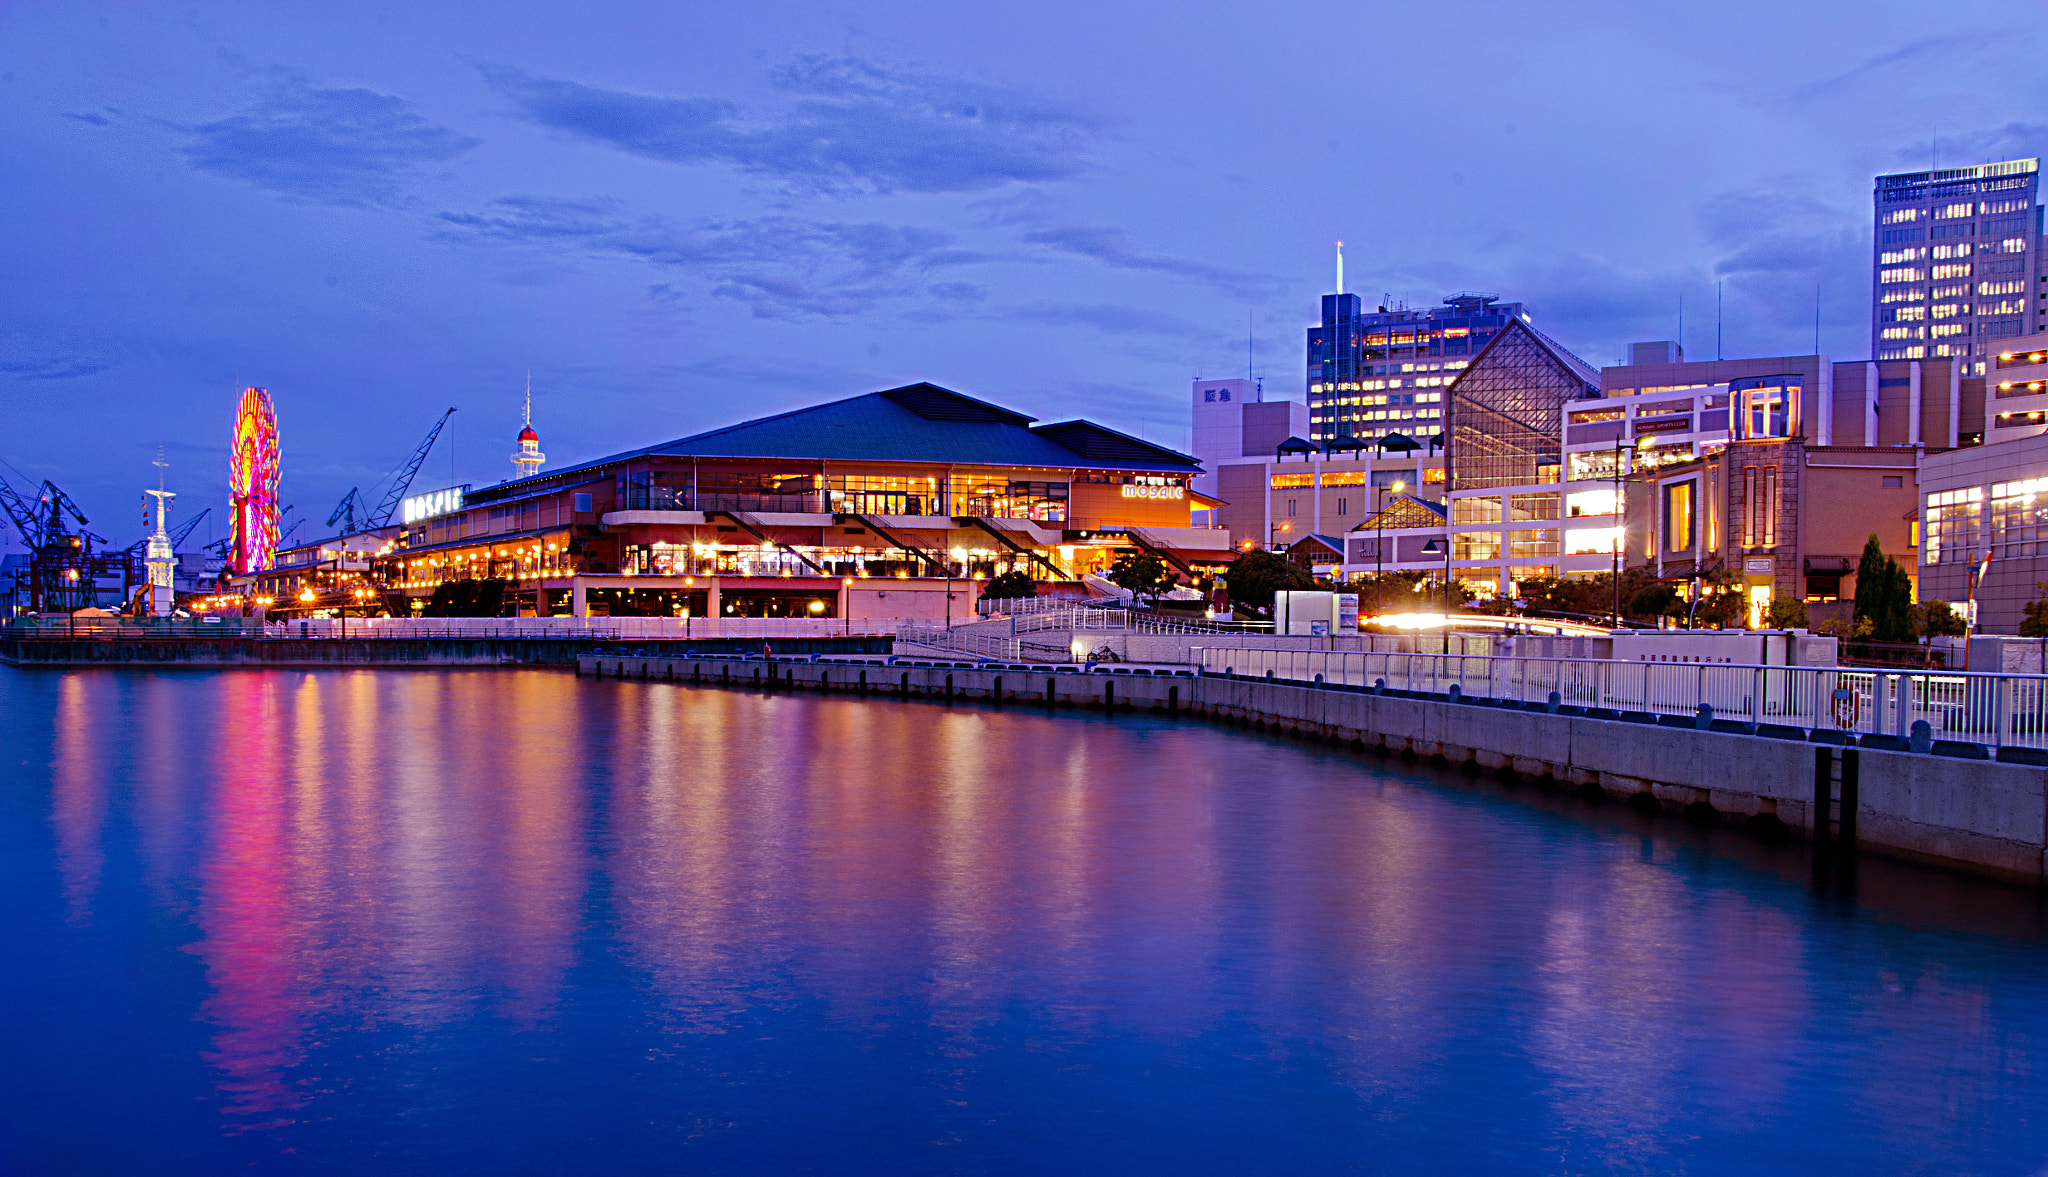 Photograph Harbourland kobe by Rosi Granada on 500px